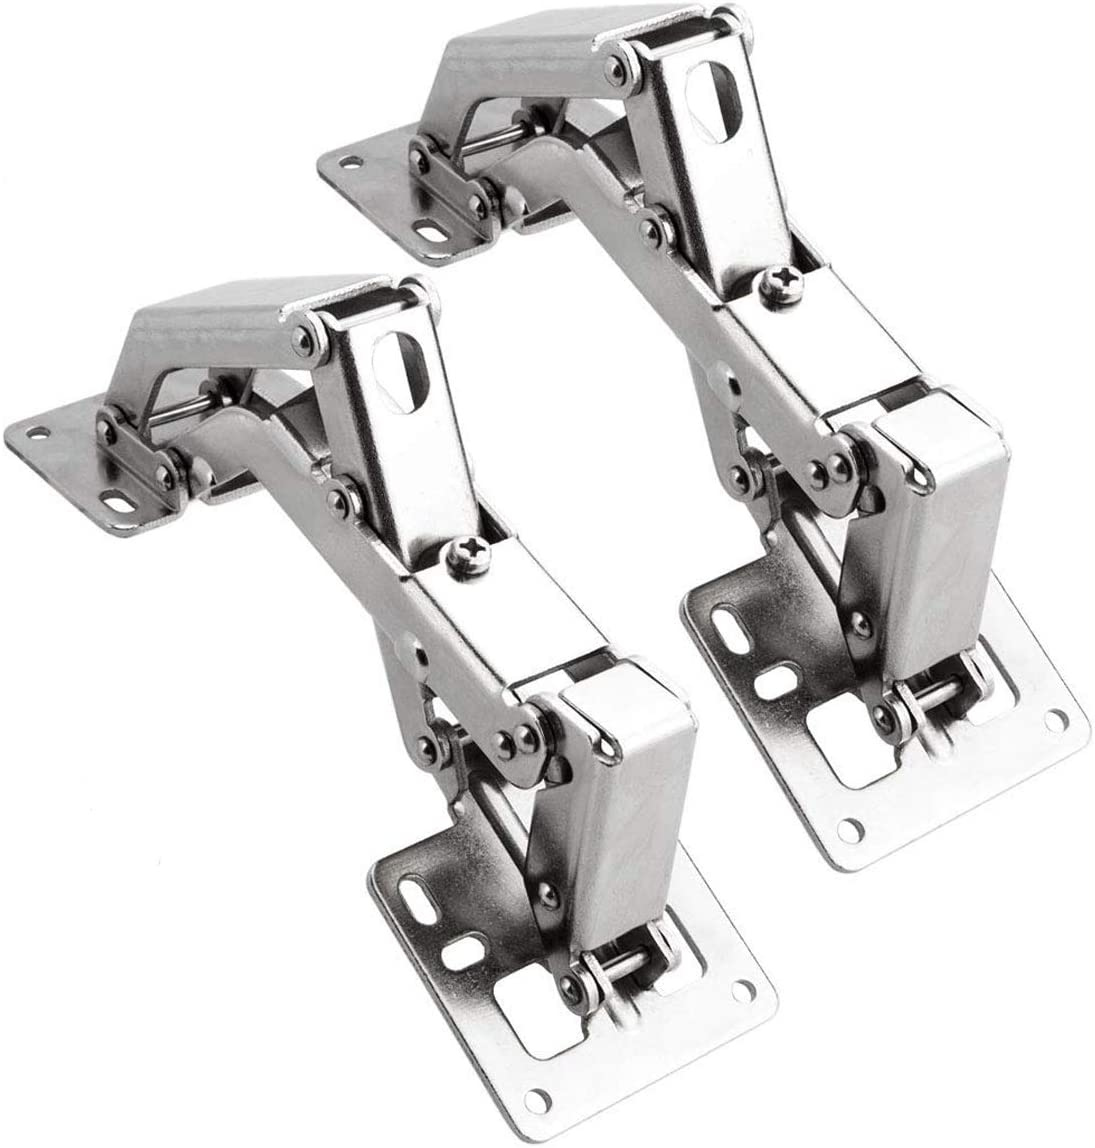 2Pcs 3 Inches Cabinet Hinge Window Door Hinges Damper Opening Angle 130 Degree